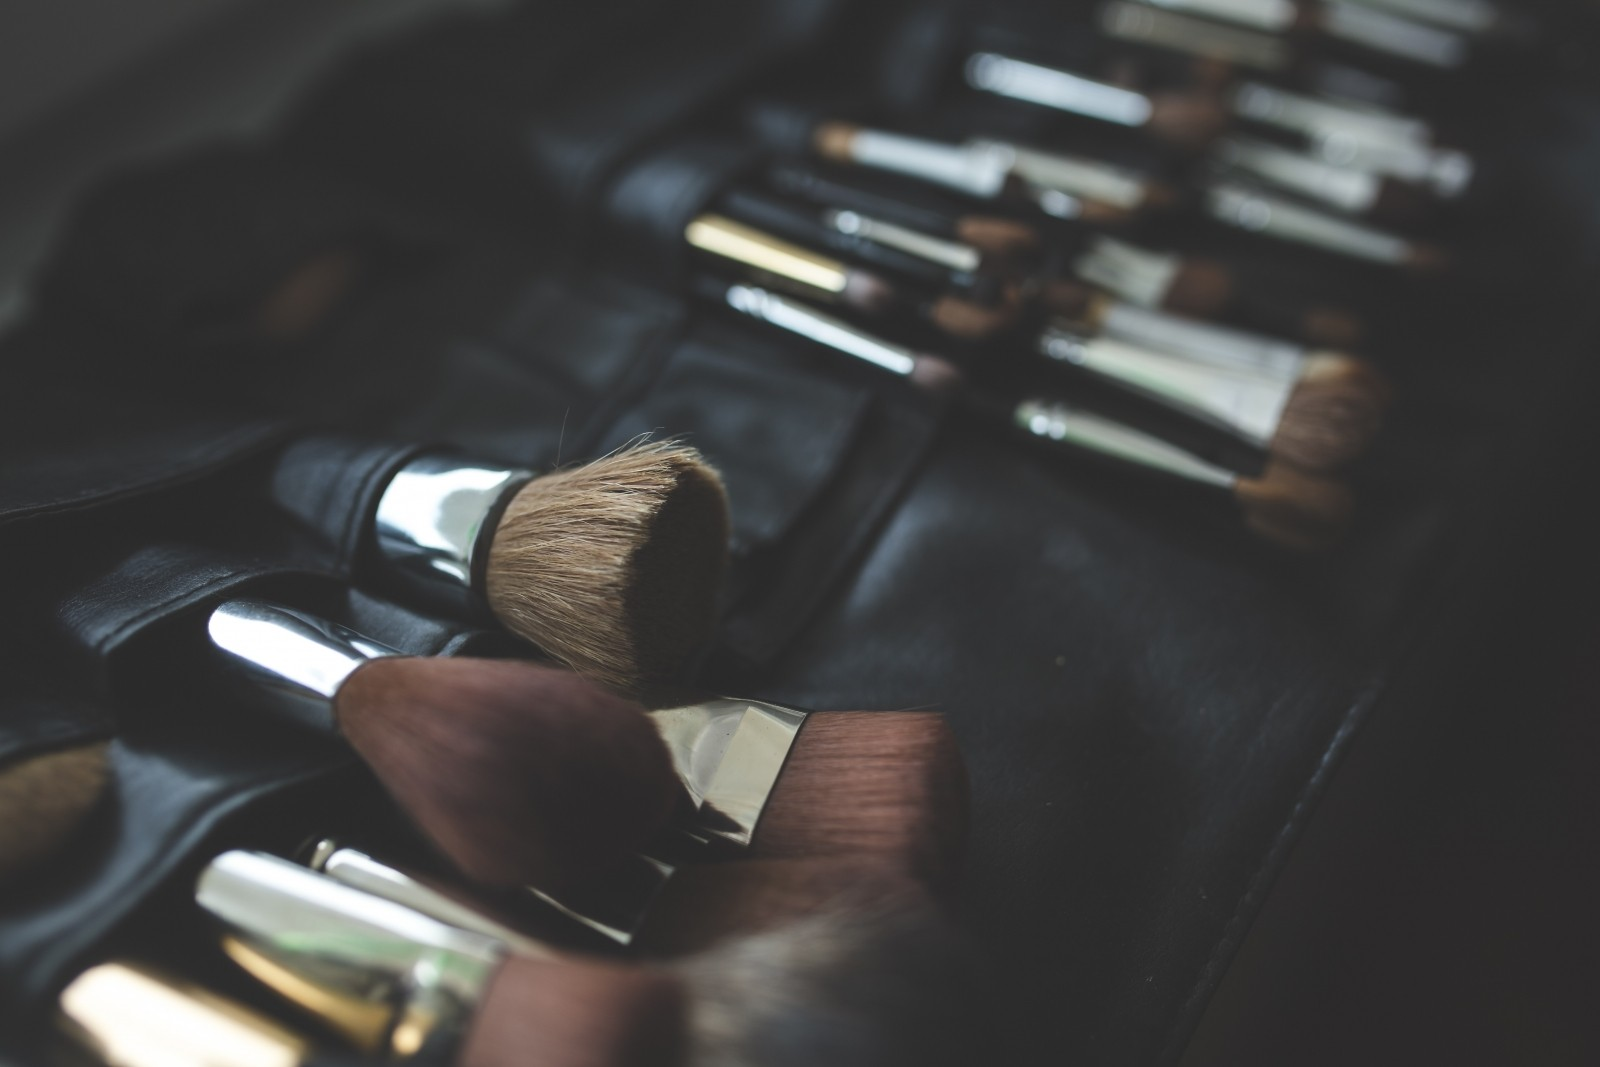 1-a-bunch-of-make-up-brushes.jpg